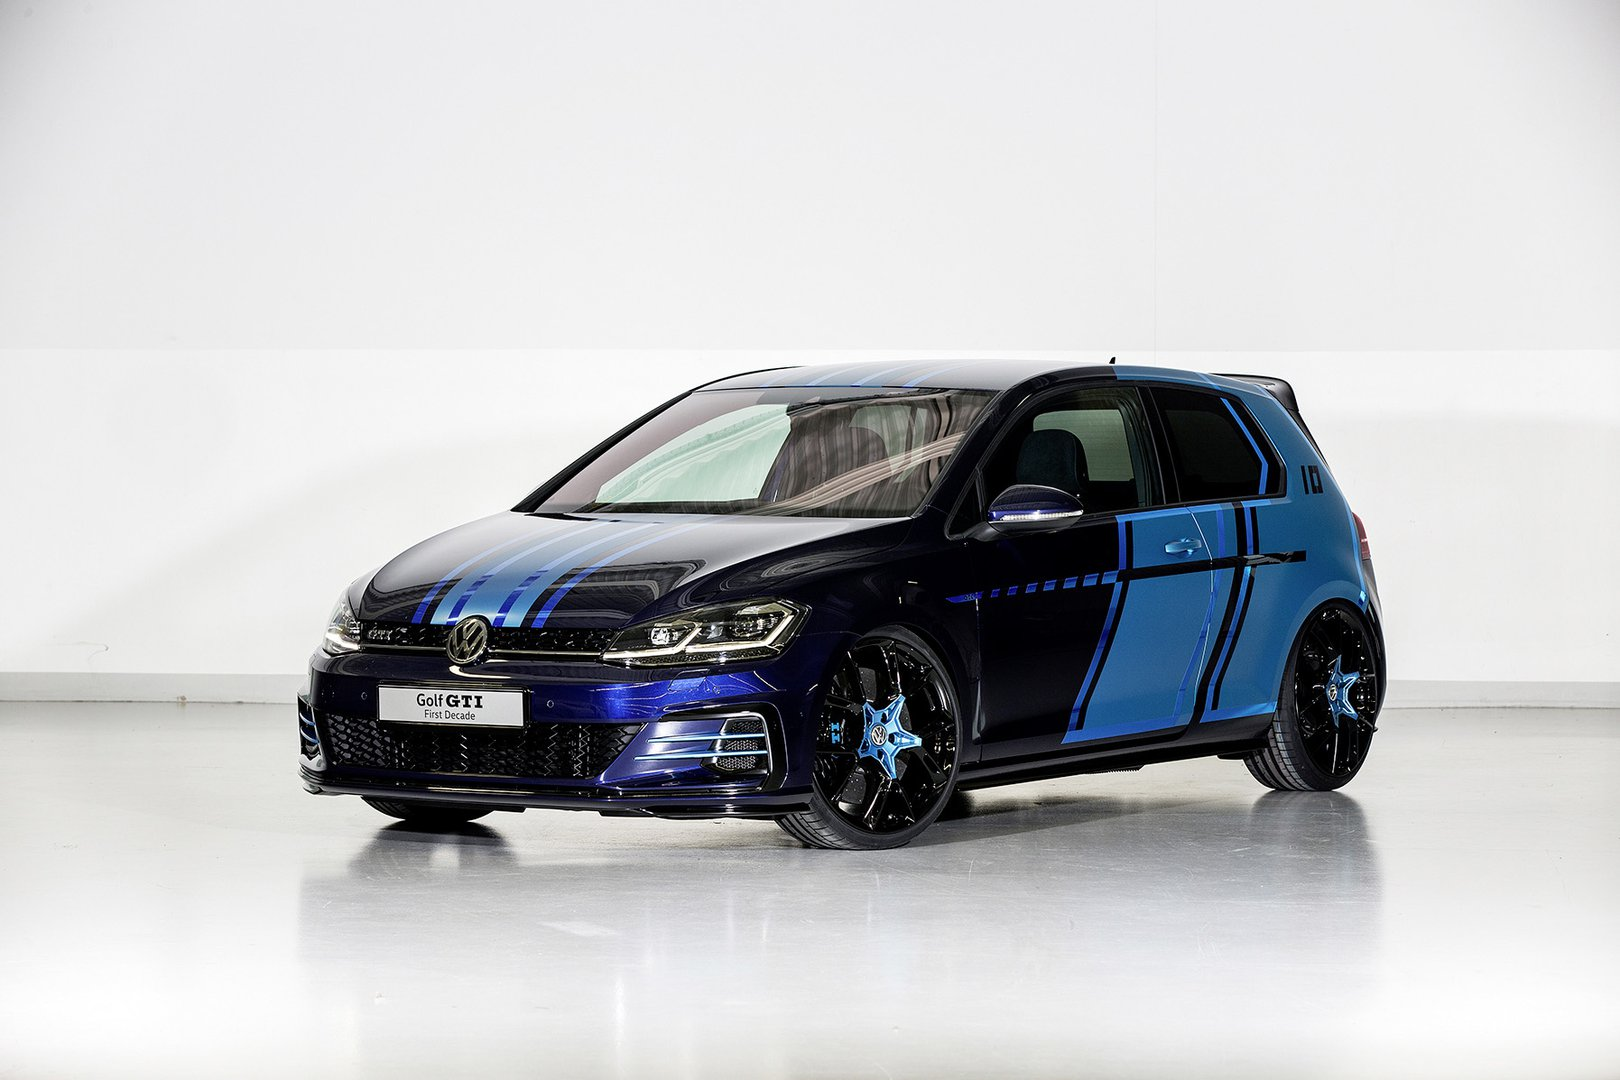 volkswagen s apprentices present the first electric gti at the rh plugin magazine com 2000 Golf GTI Golf GT